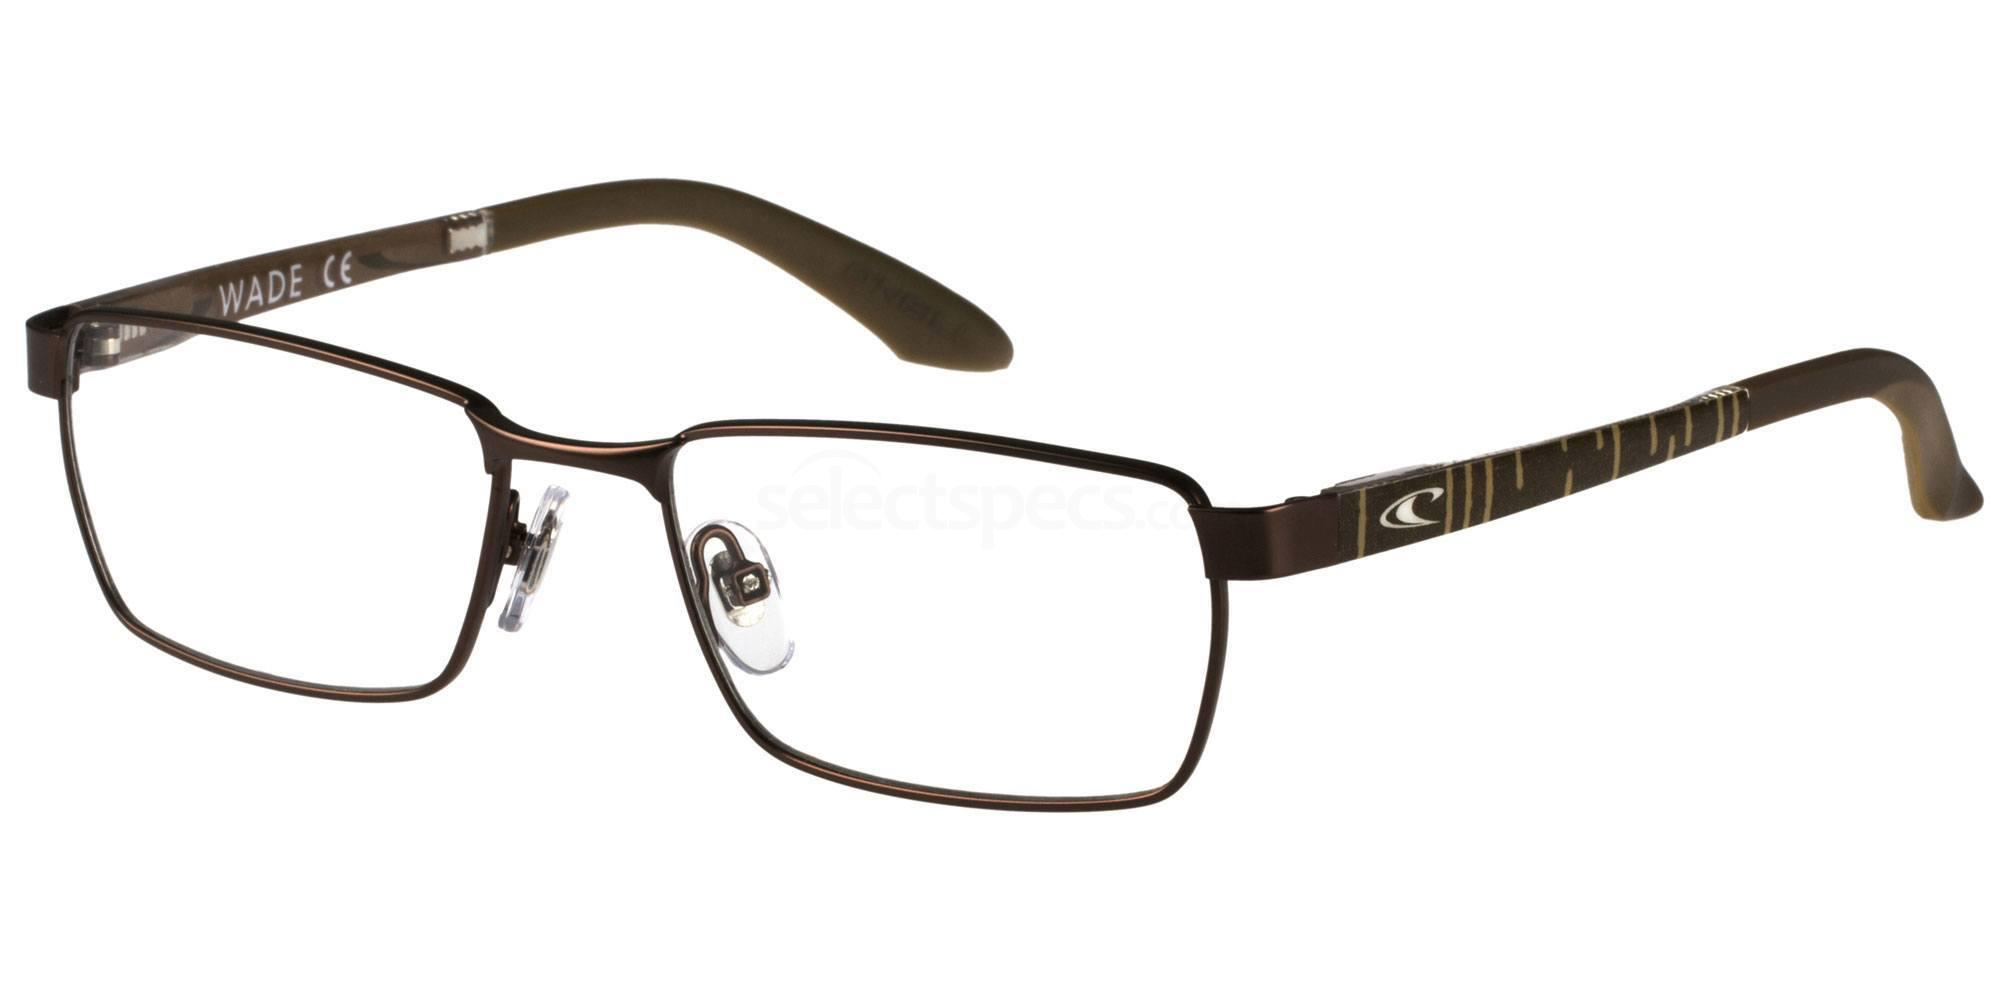 003 ONO-WADE (Small Fit) Glasses, O'Neill